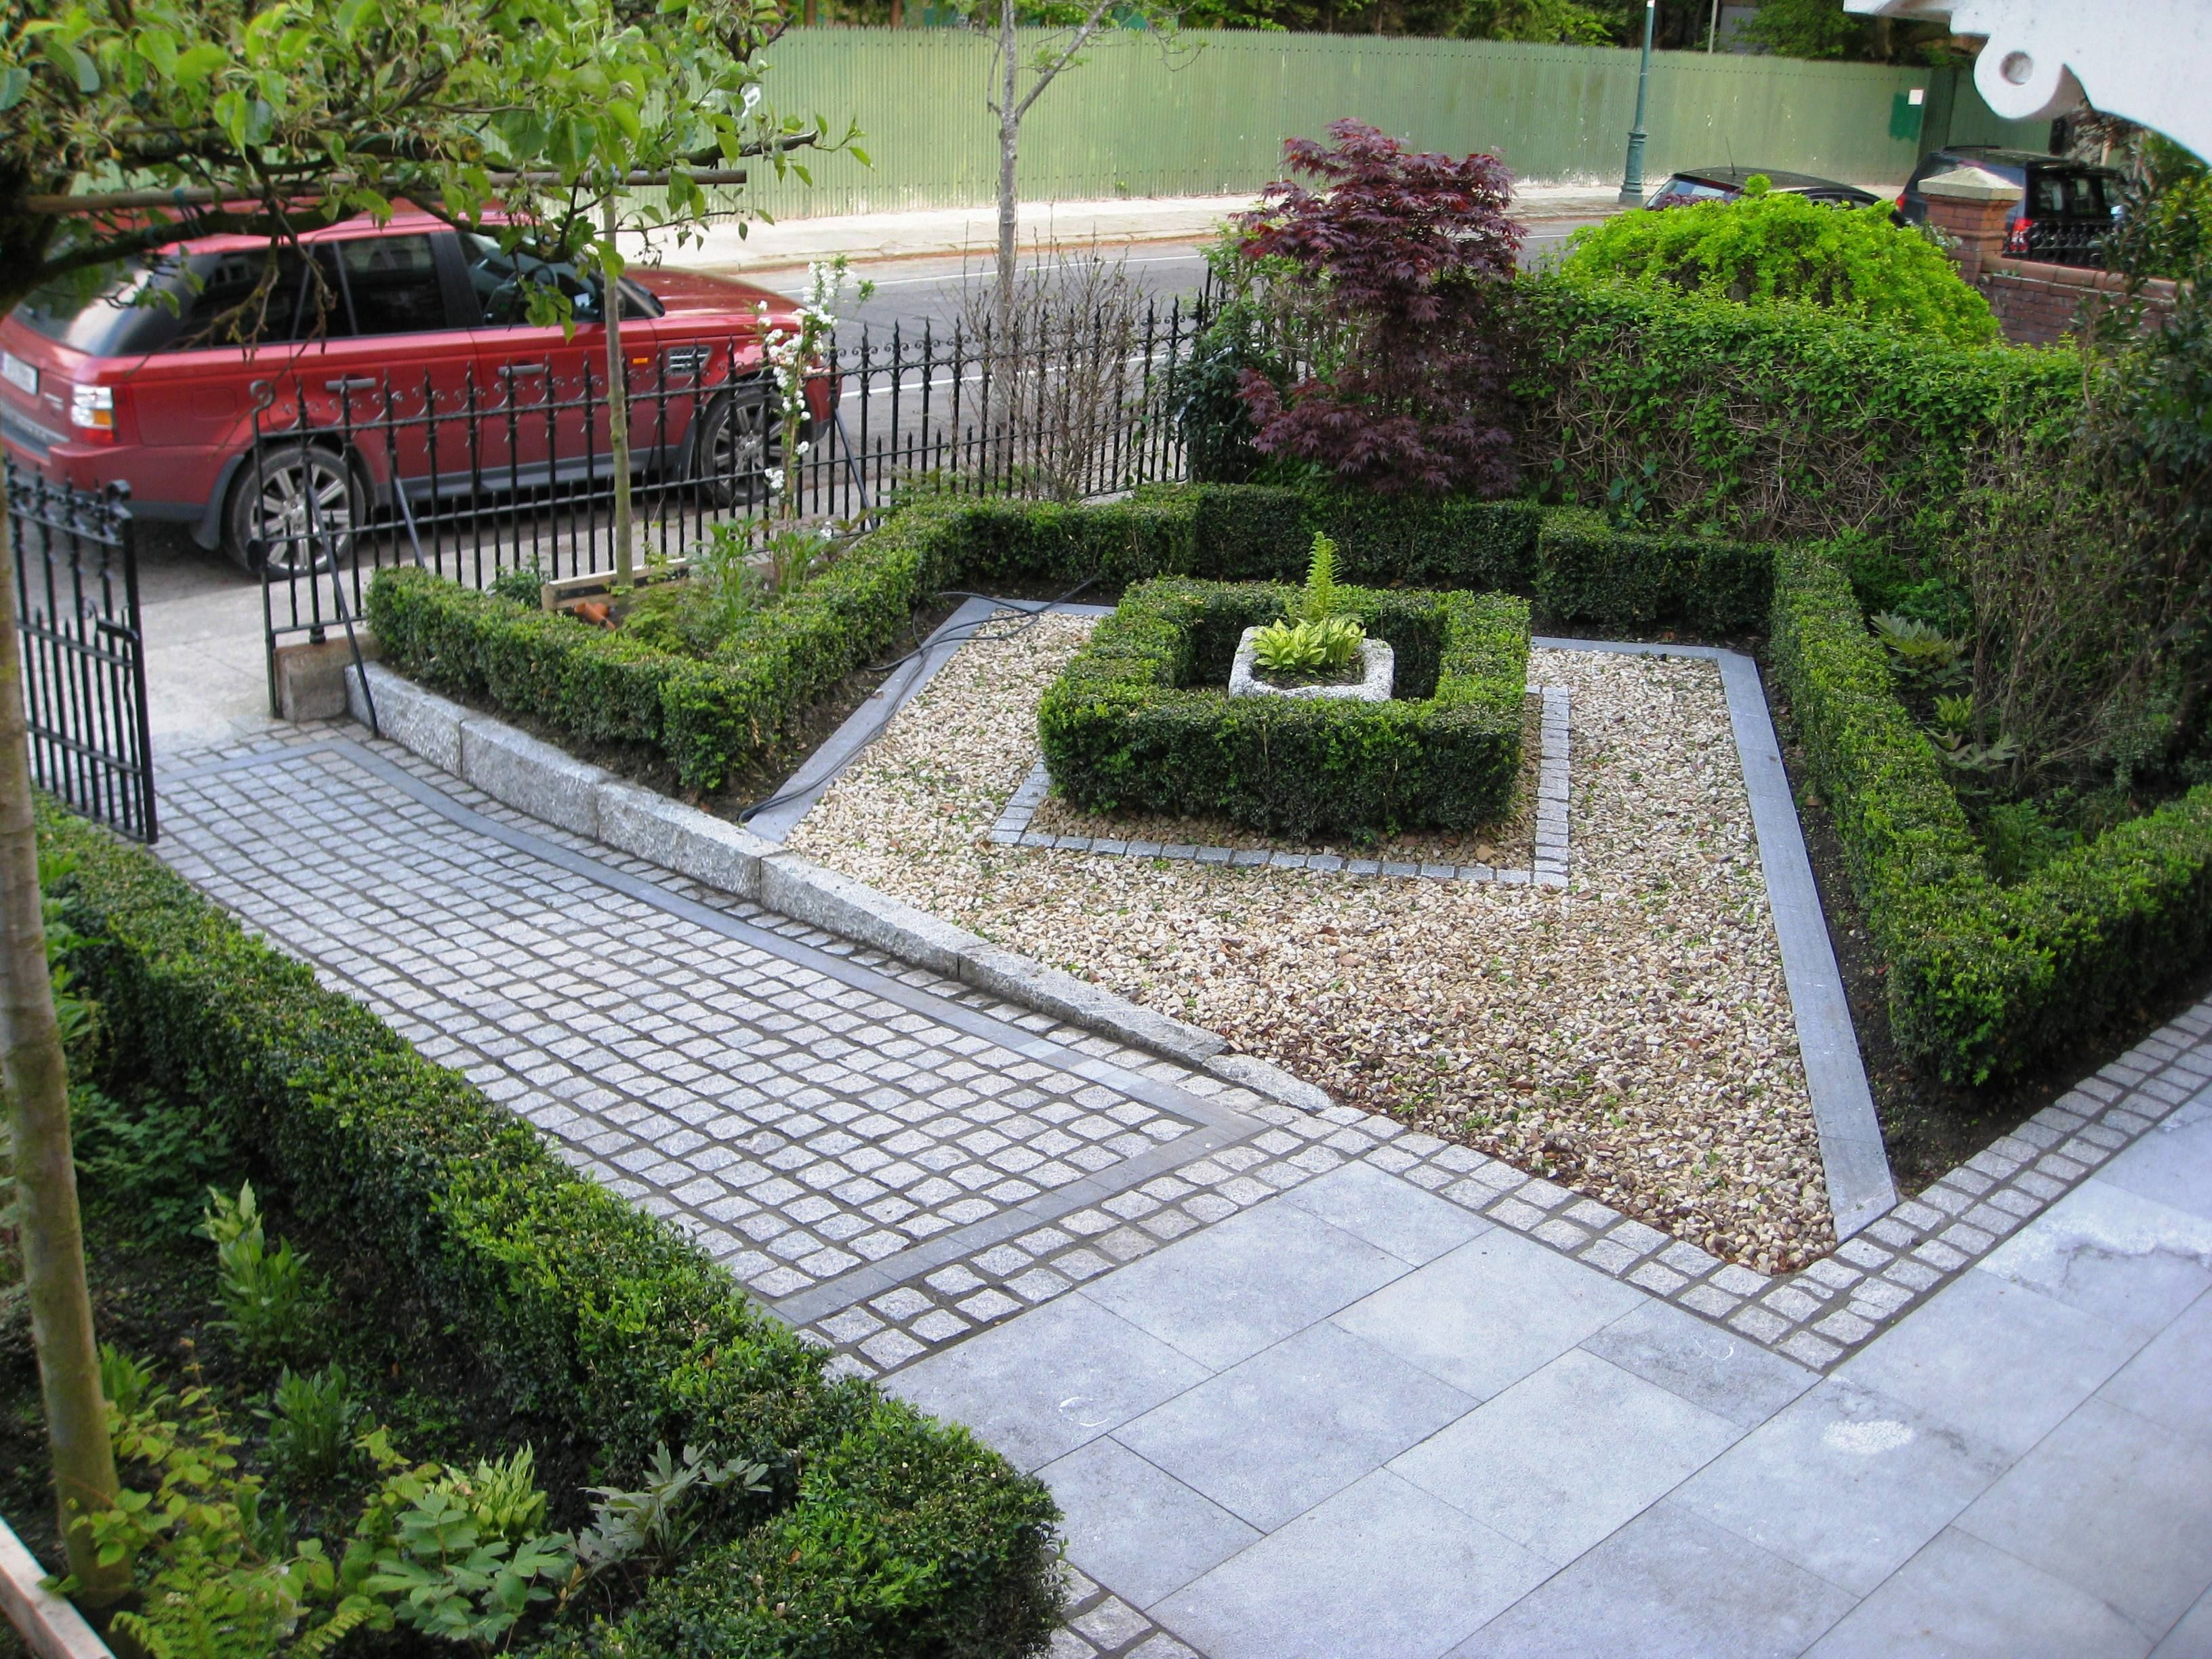 Lovely no lawn front yard in formal style glorious for Small lawn garden ideas